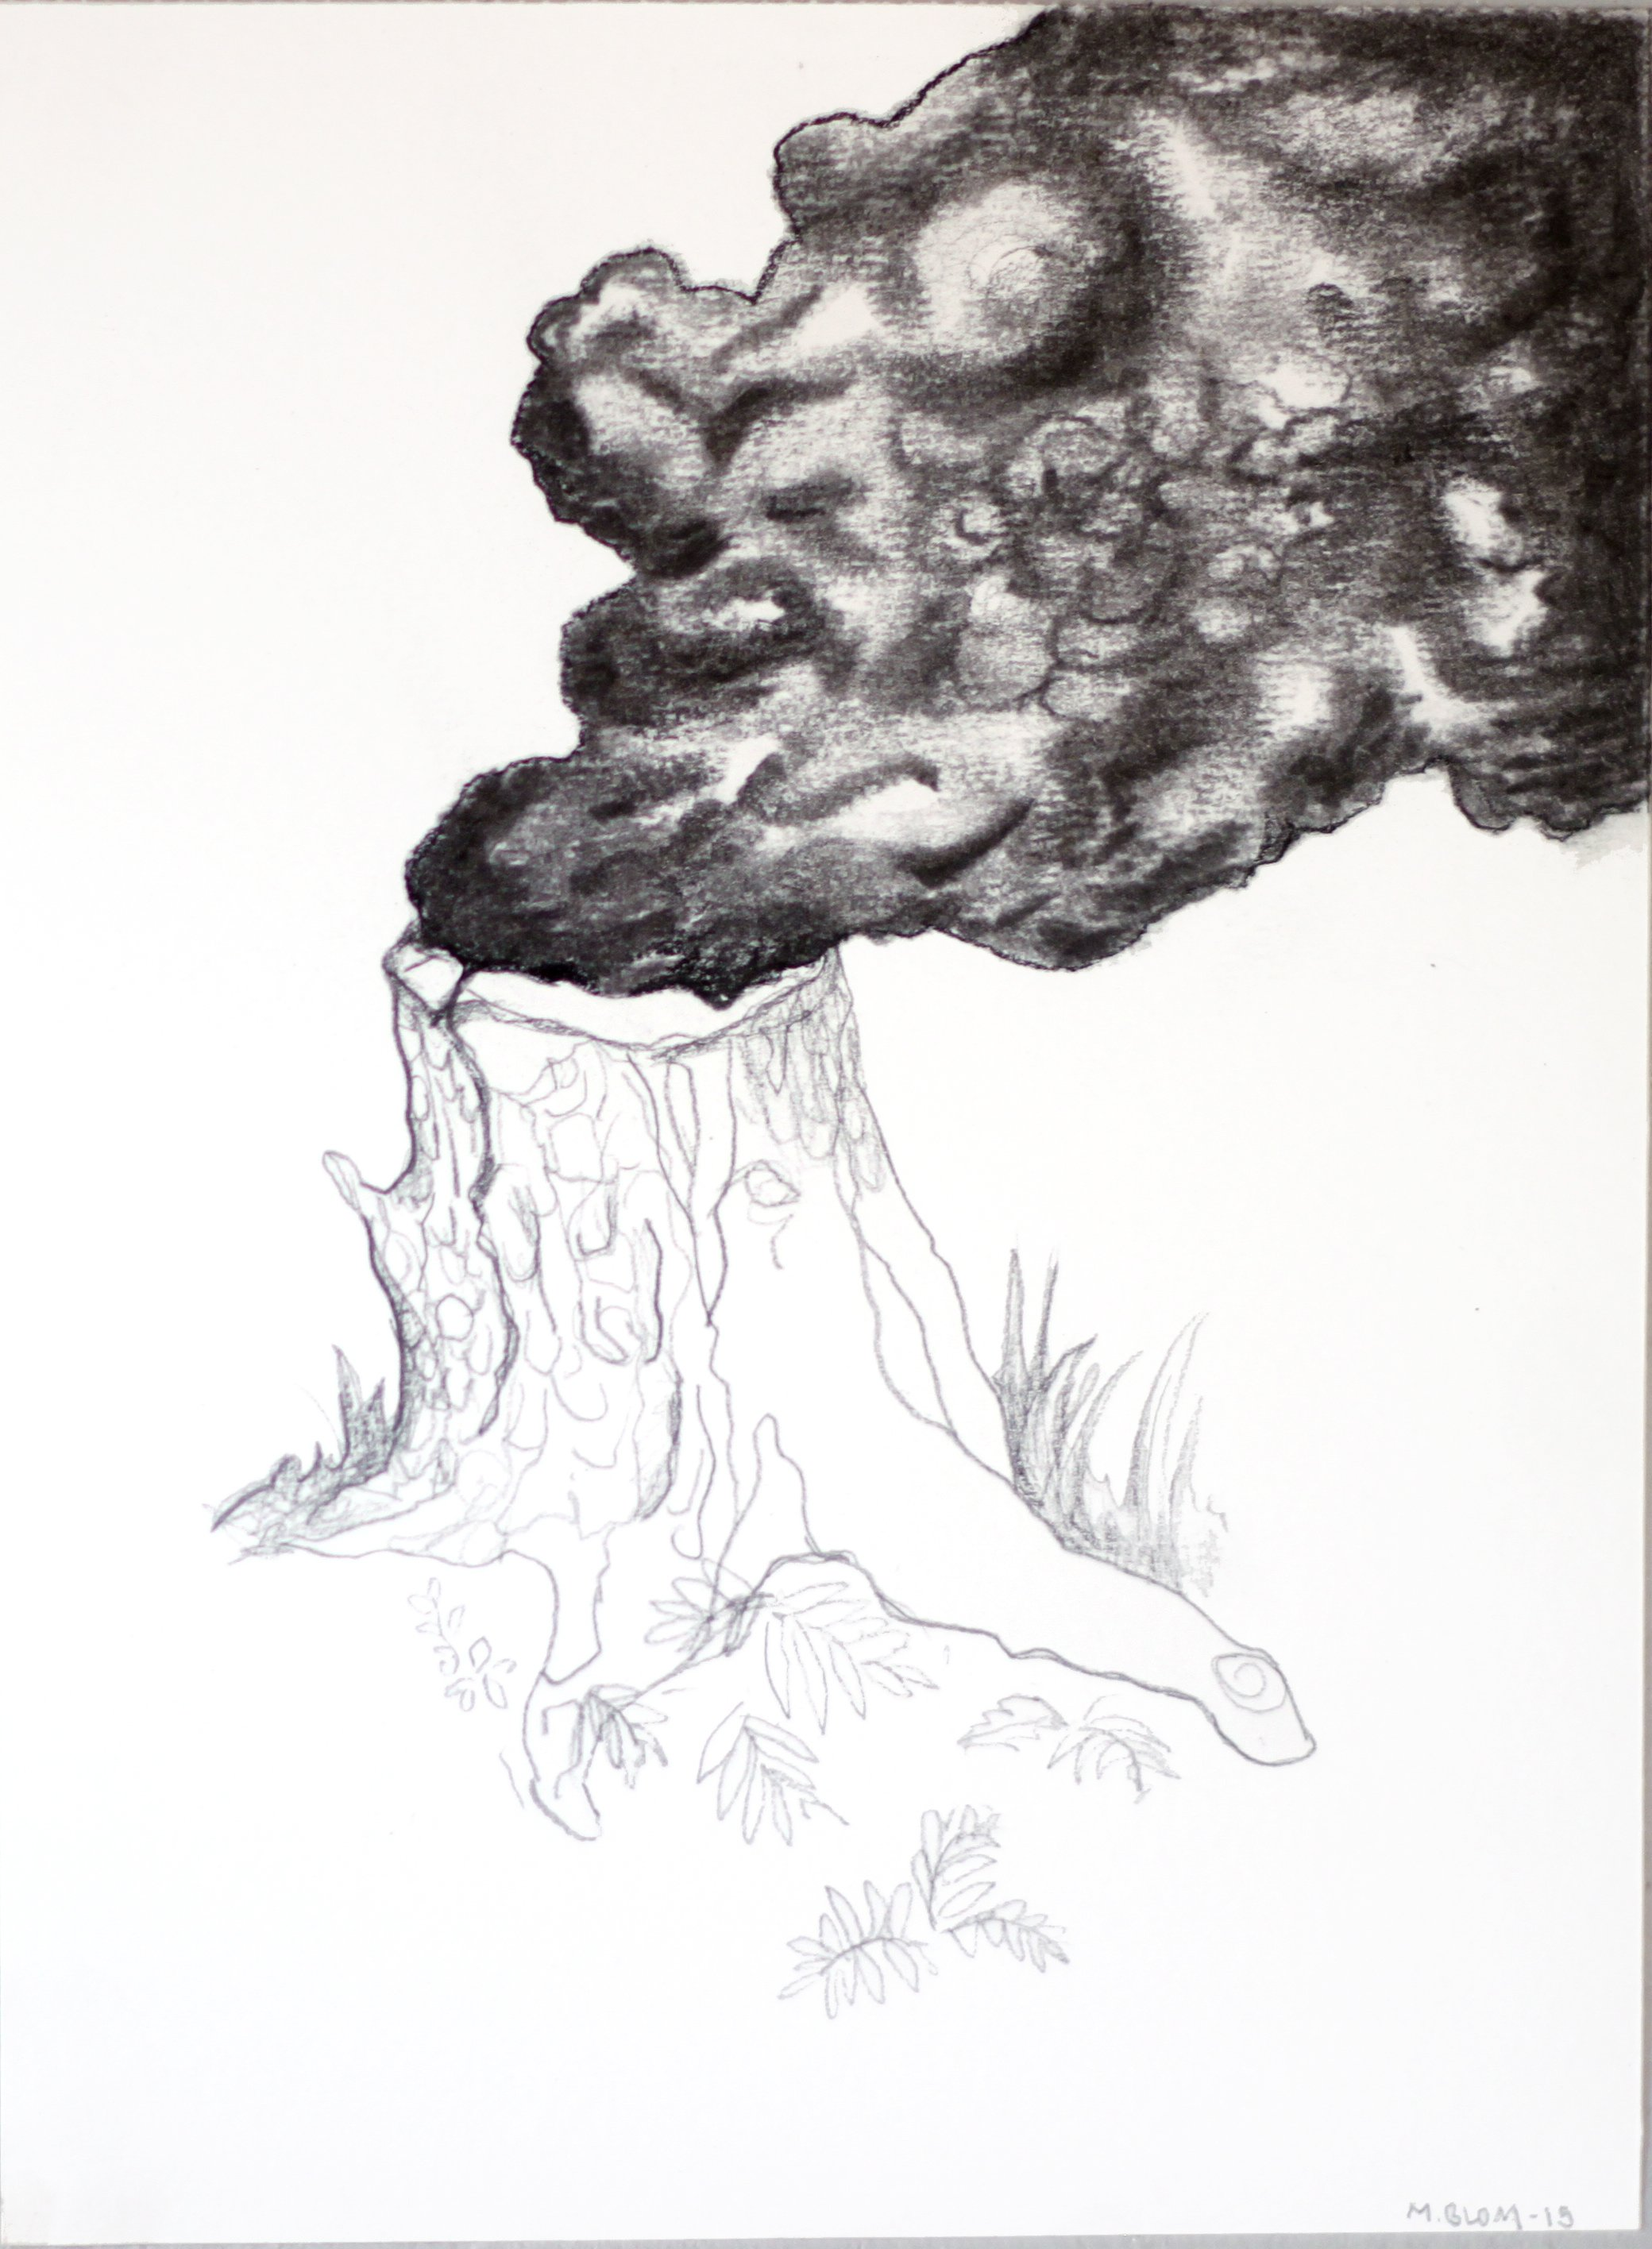 Stubbrand / Burning stump (2015) coal and pen on paper, 29x21 cm